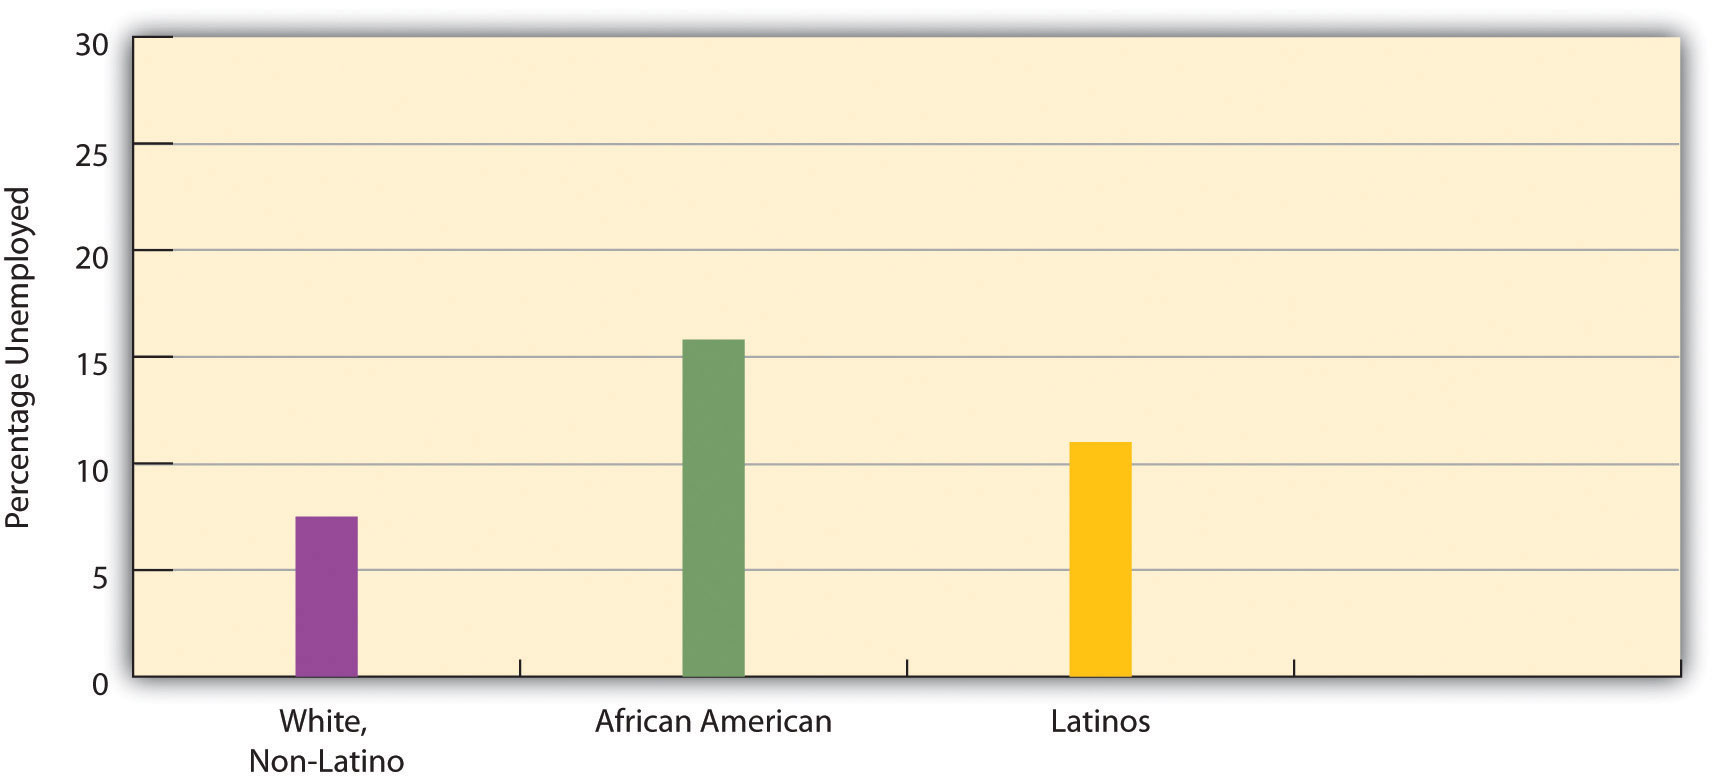 Race, Ethnicity, and Unemployment Rate, this shows that 16% of African Americans are unemployed, as well as 12% Latinos, and 8% of whites/non-latino